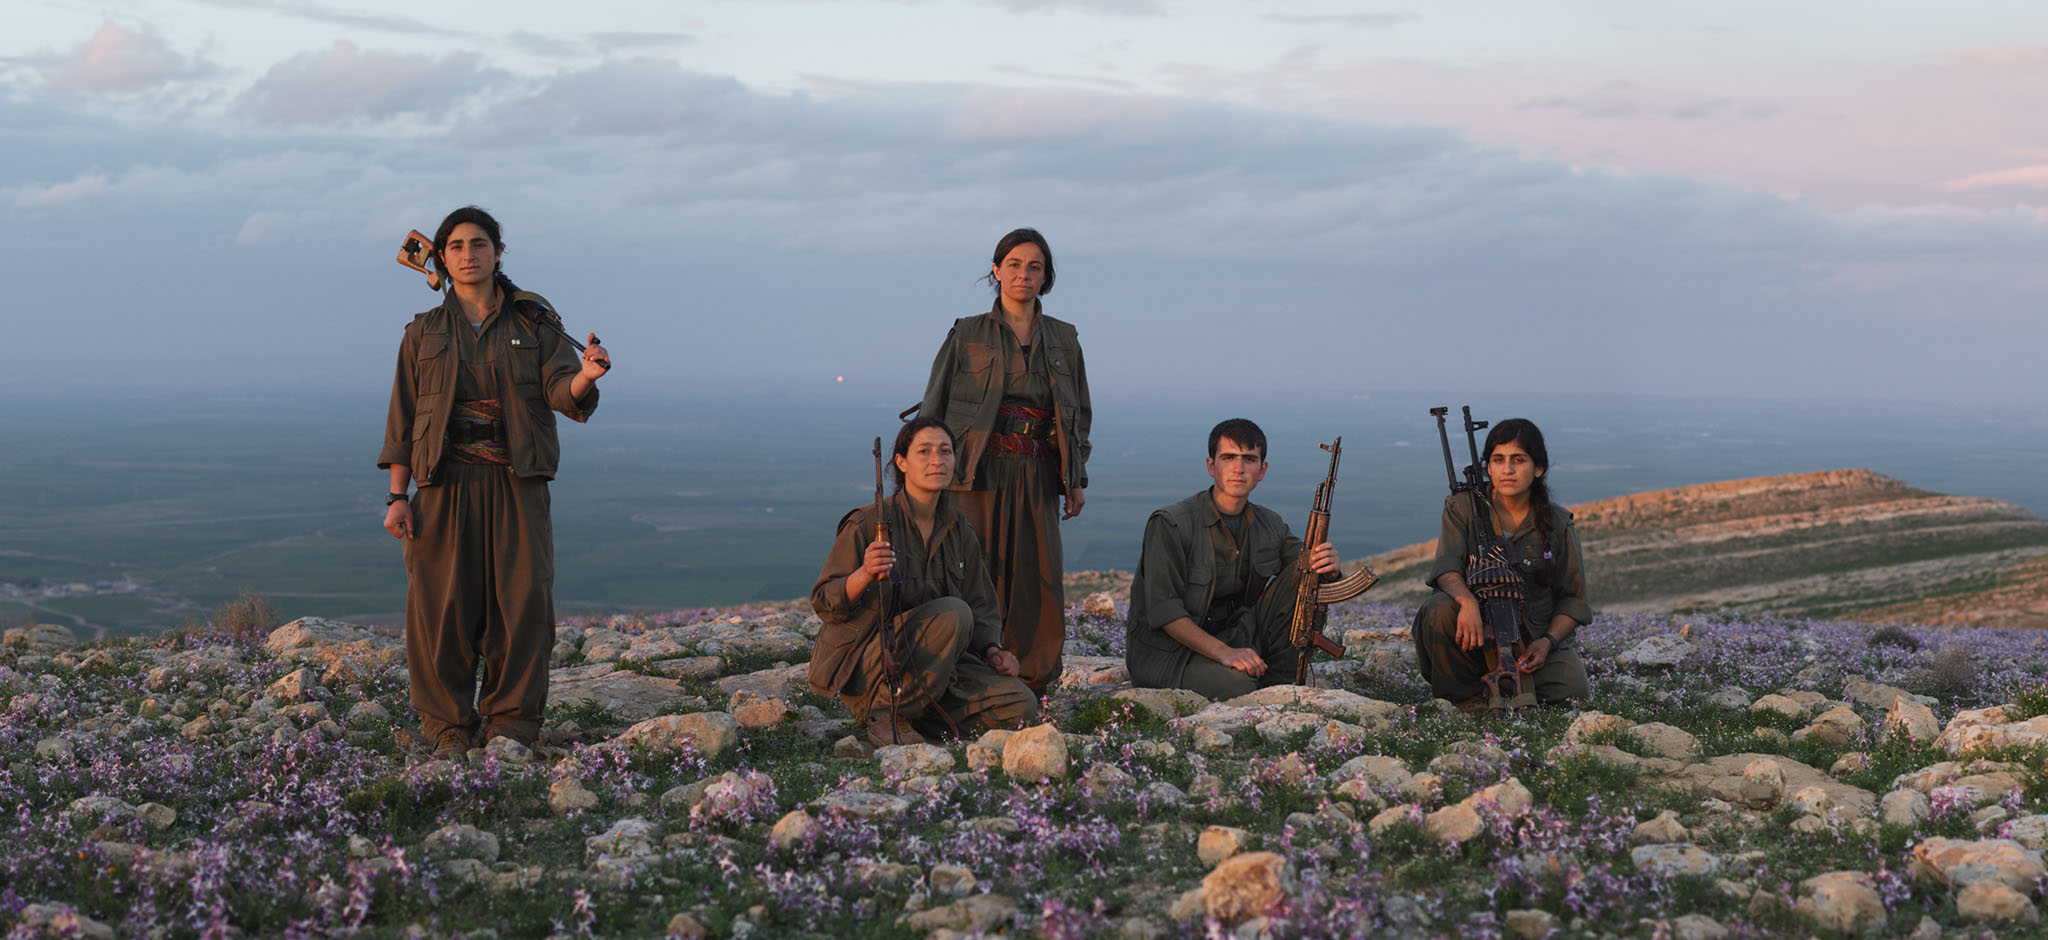 kurdistan and the pkk There's drama between kurdistan's two best frenemies the pkk came to fight islamic state—and then overstayed its welcome.